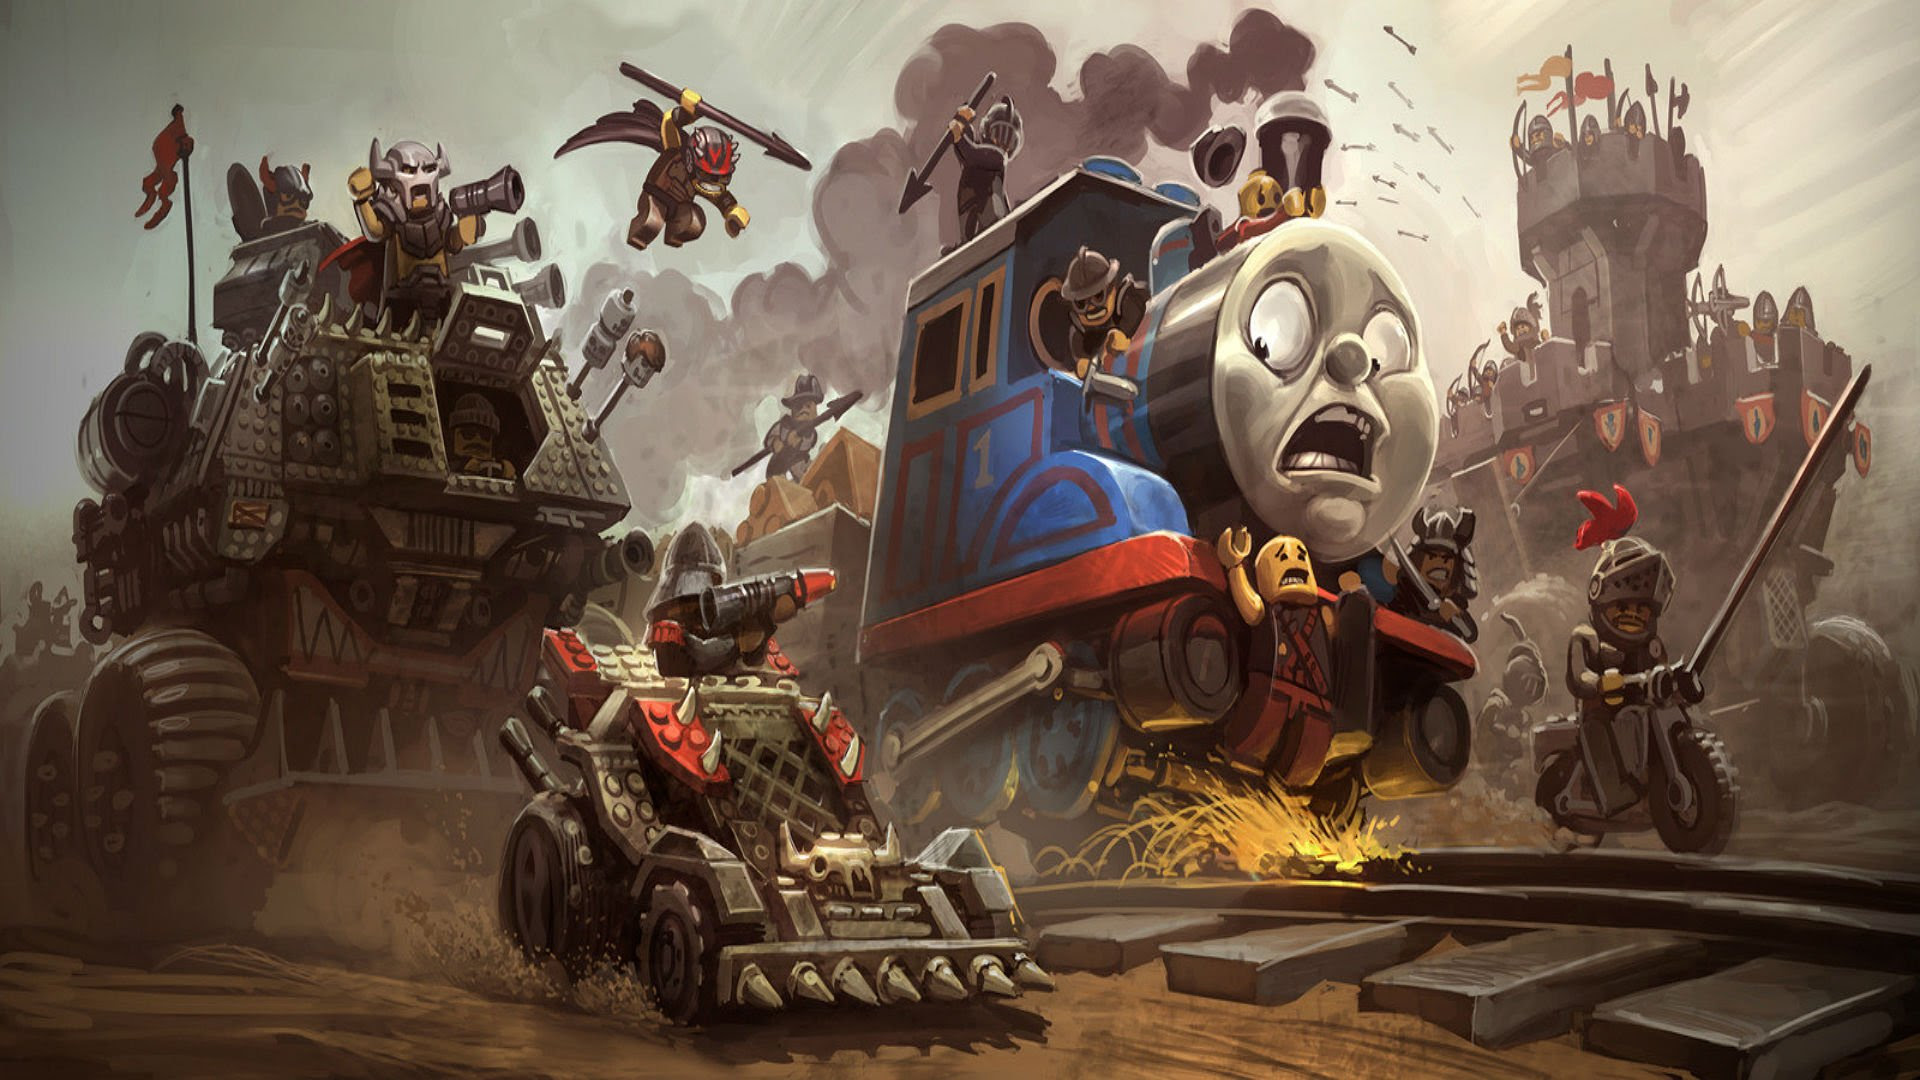 Mad Max Wallpaper 33 Wallpapers Adorable Wallpapers